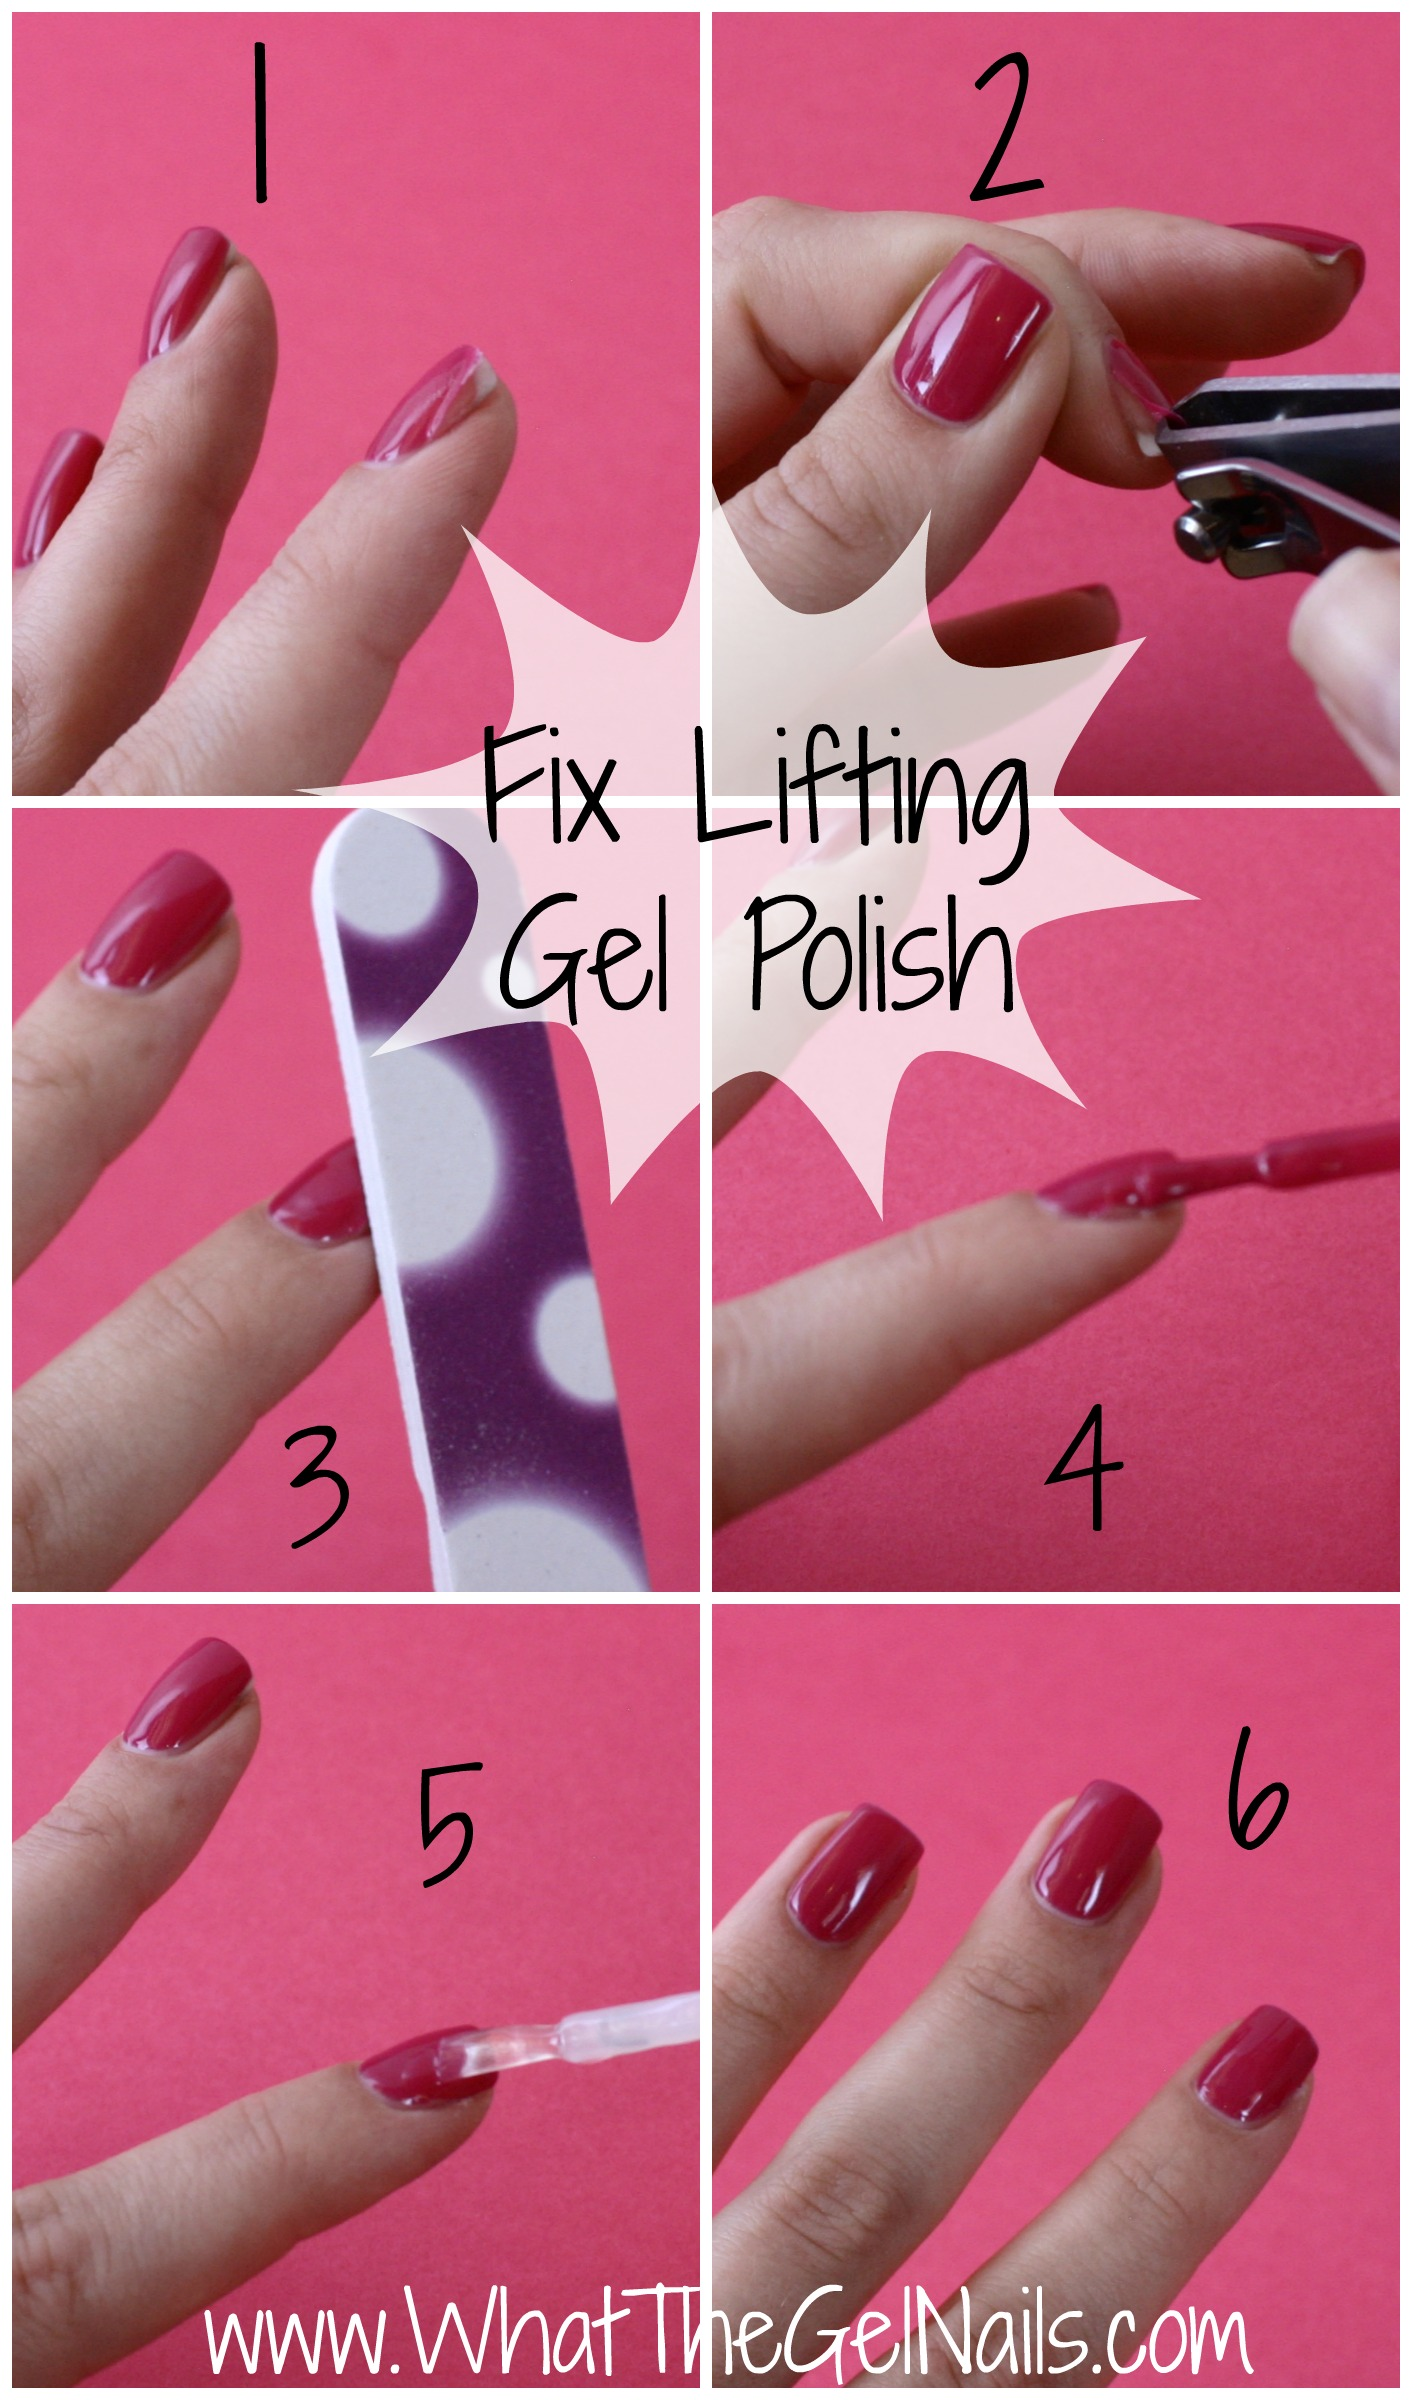 Tips and tricks for gel polish lifting fix lifting gel polish in just 5 steps plus more tips and tricks for gel solutioingenieria Choice Image